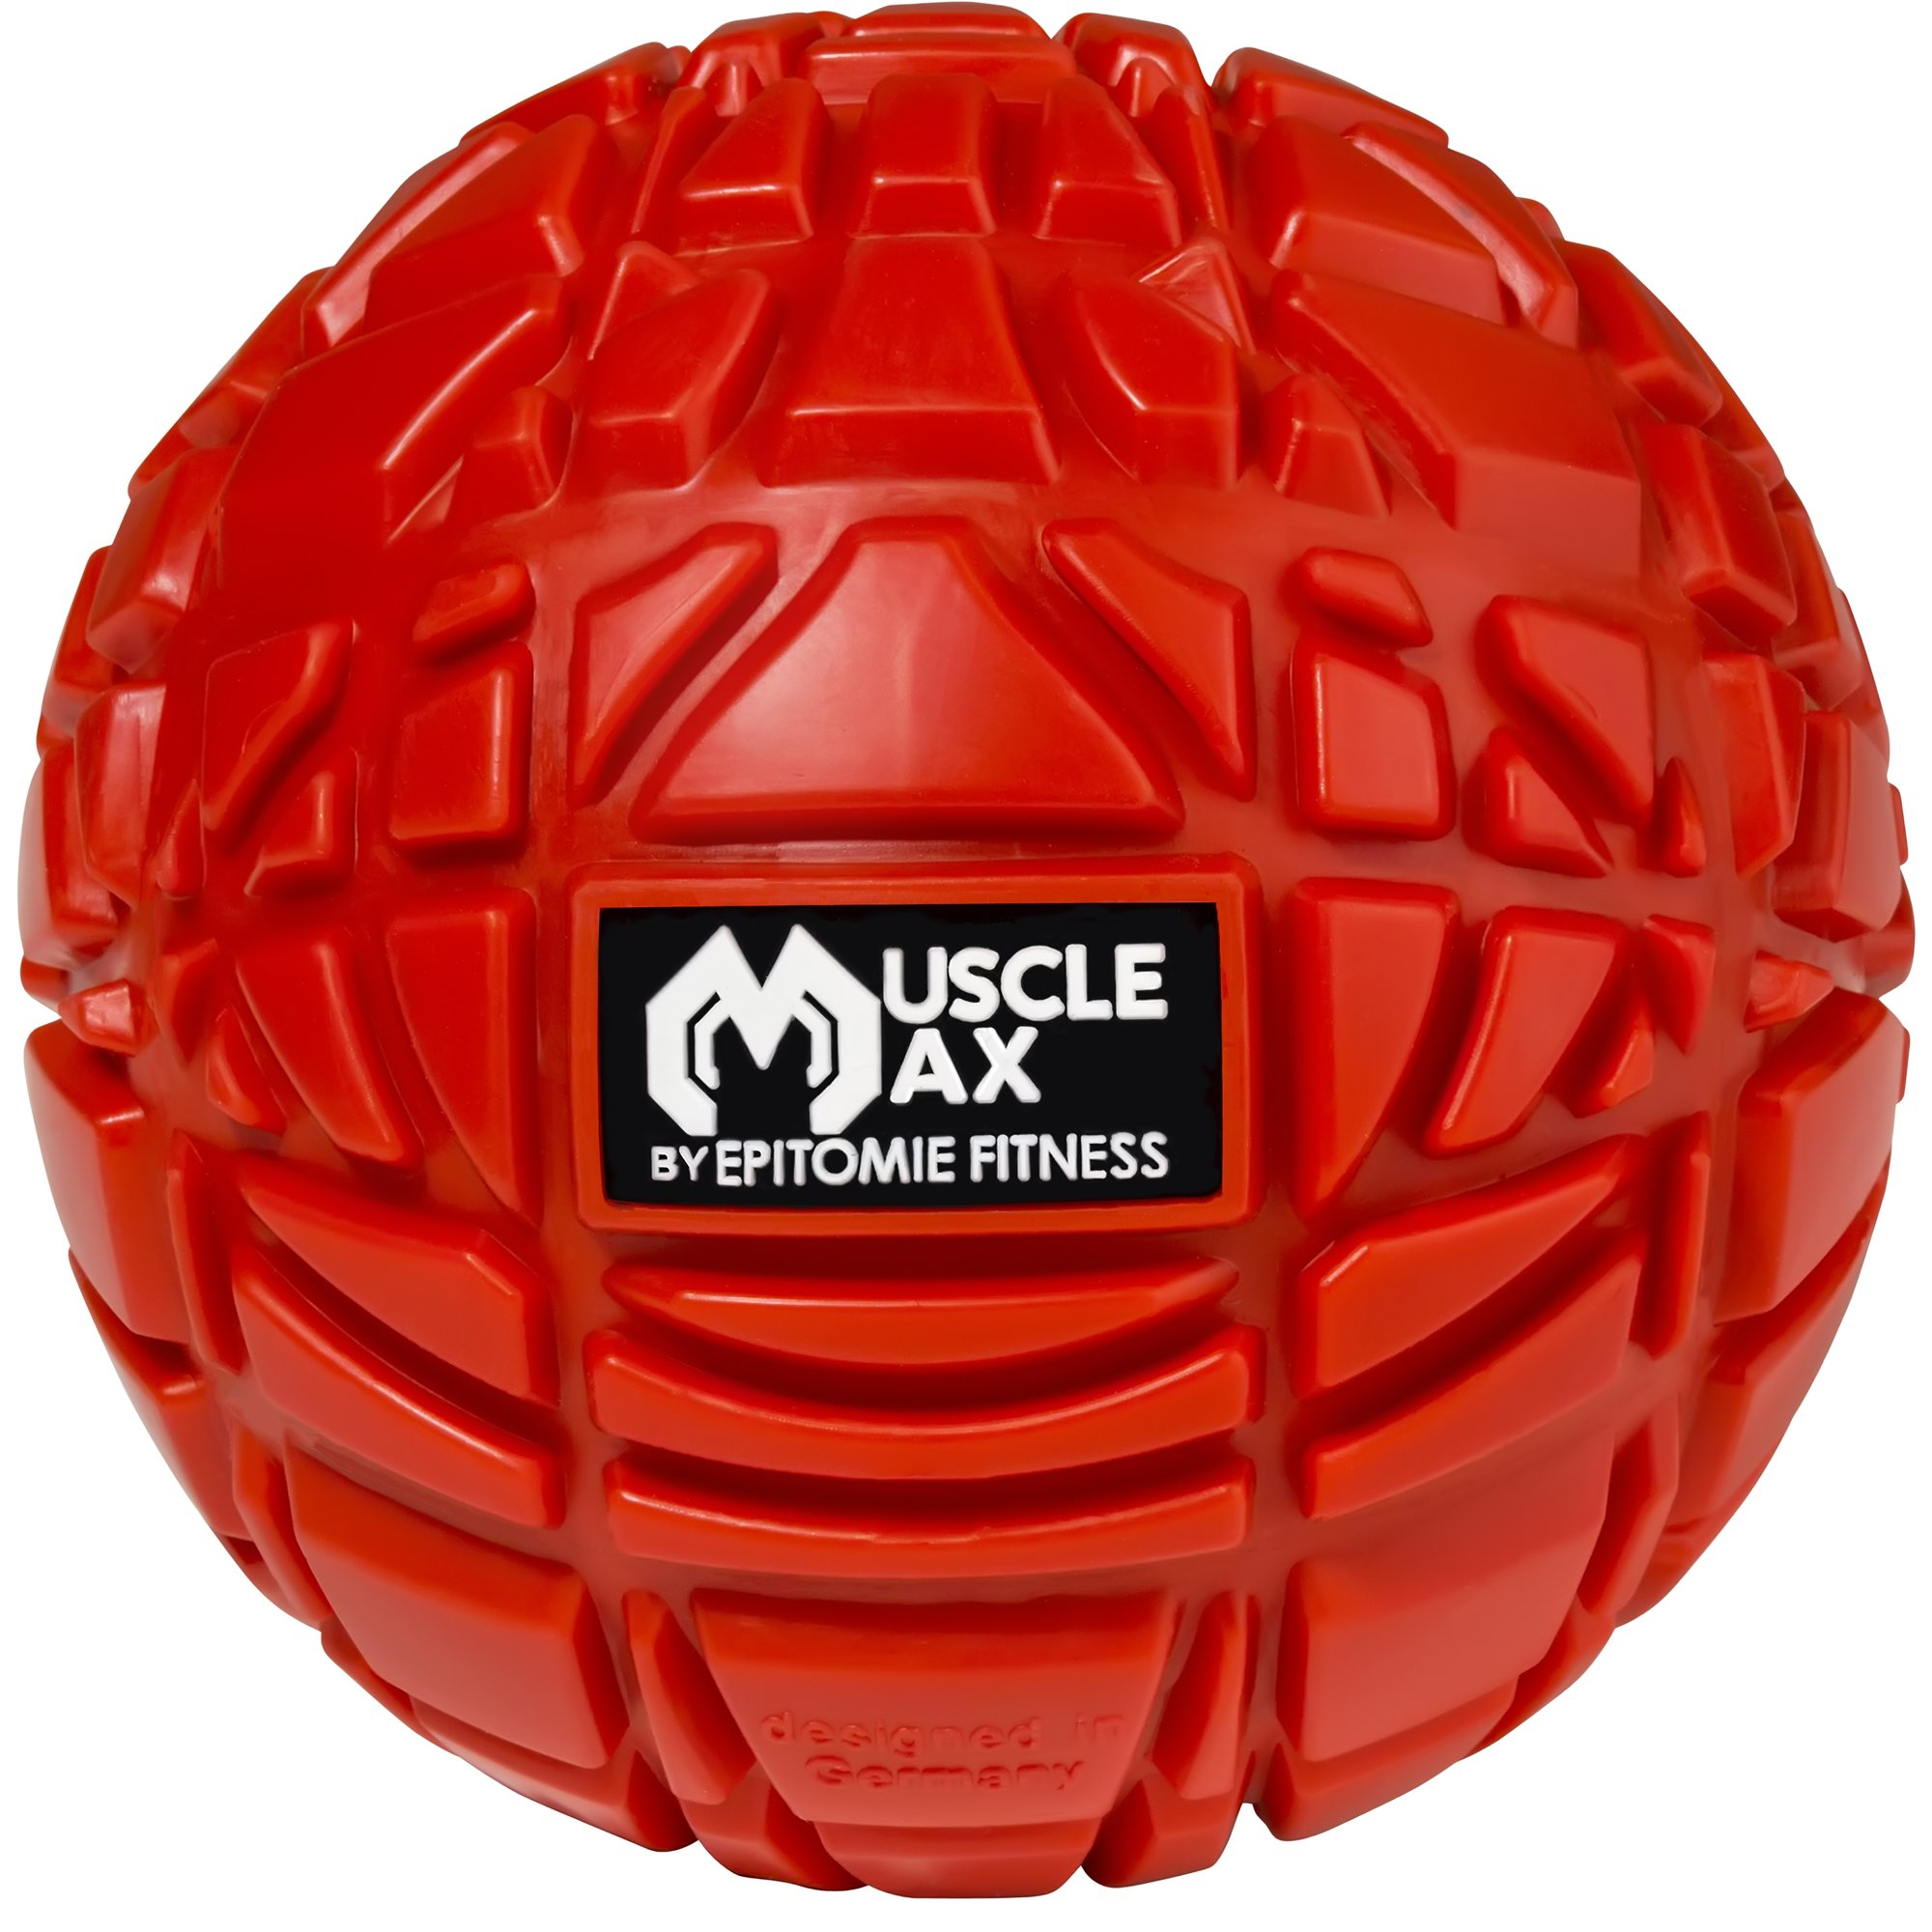 Muscle Max Massage Ball - Therapy Ball for Trigger Point Massage - Deep Tissue Massager for Myofascial Release - Mobility Ball for Exercise & Recovery by Epitomie Fitness